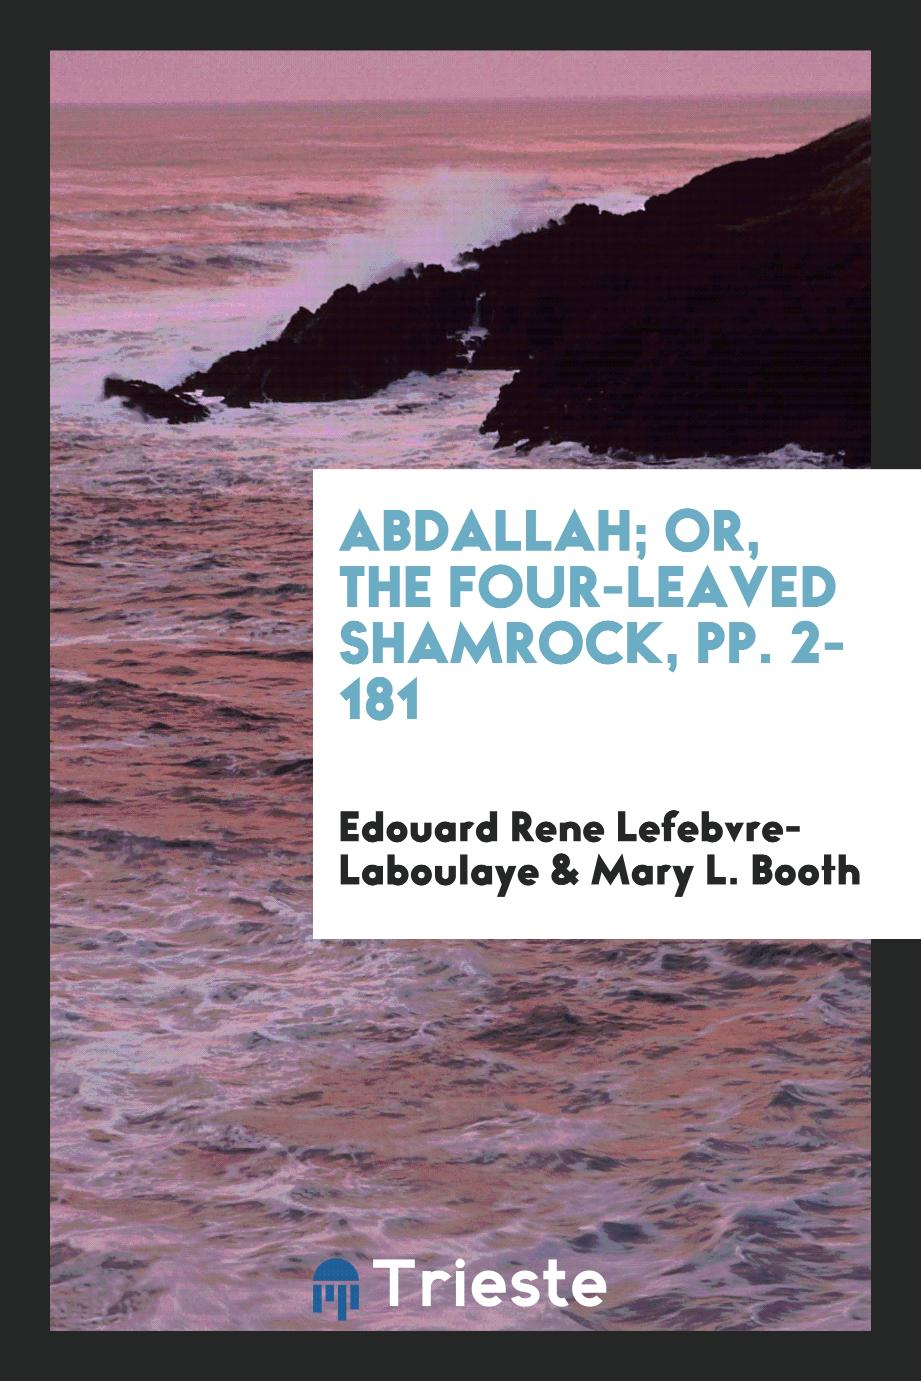 Abdallah; Or, the Four-Leaved Shamrock, pp. 2-181